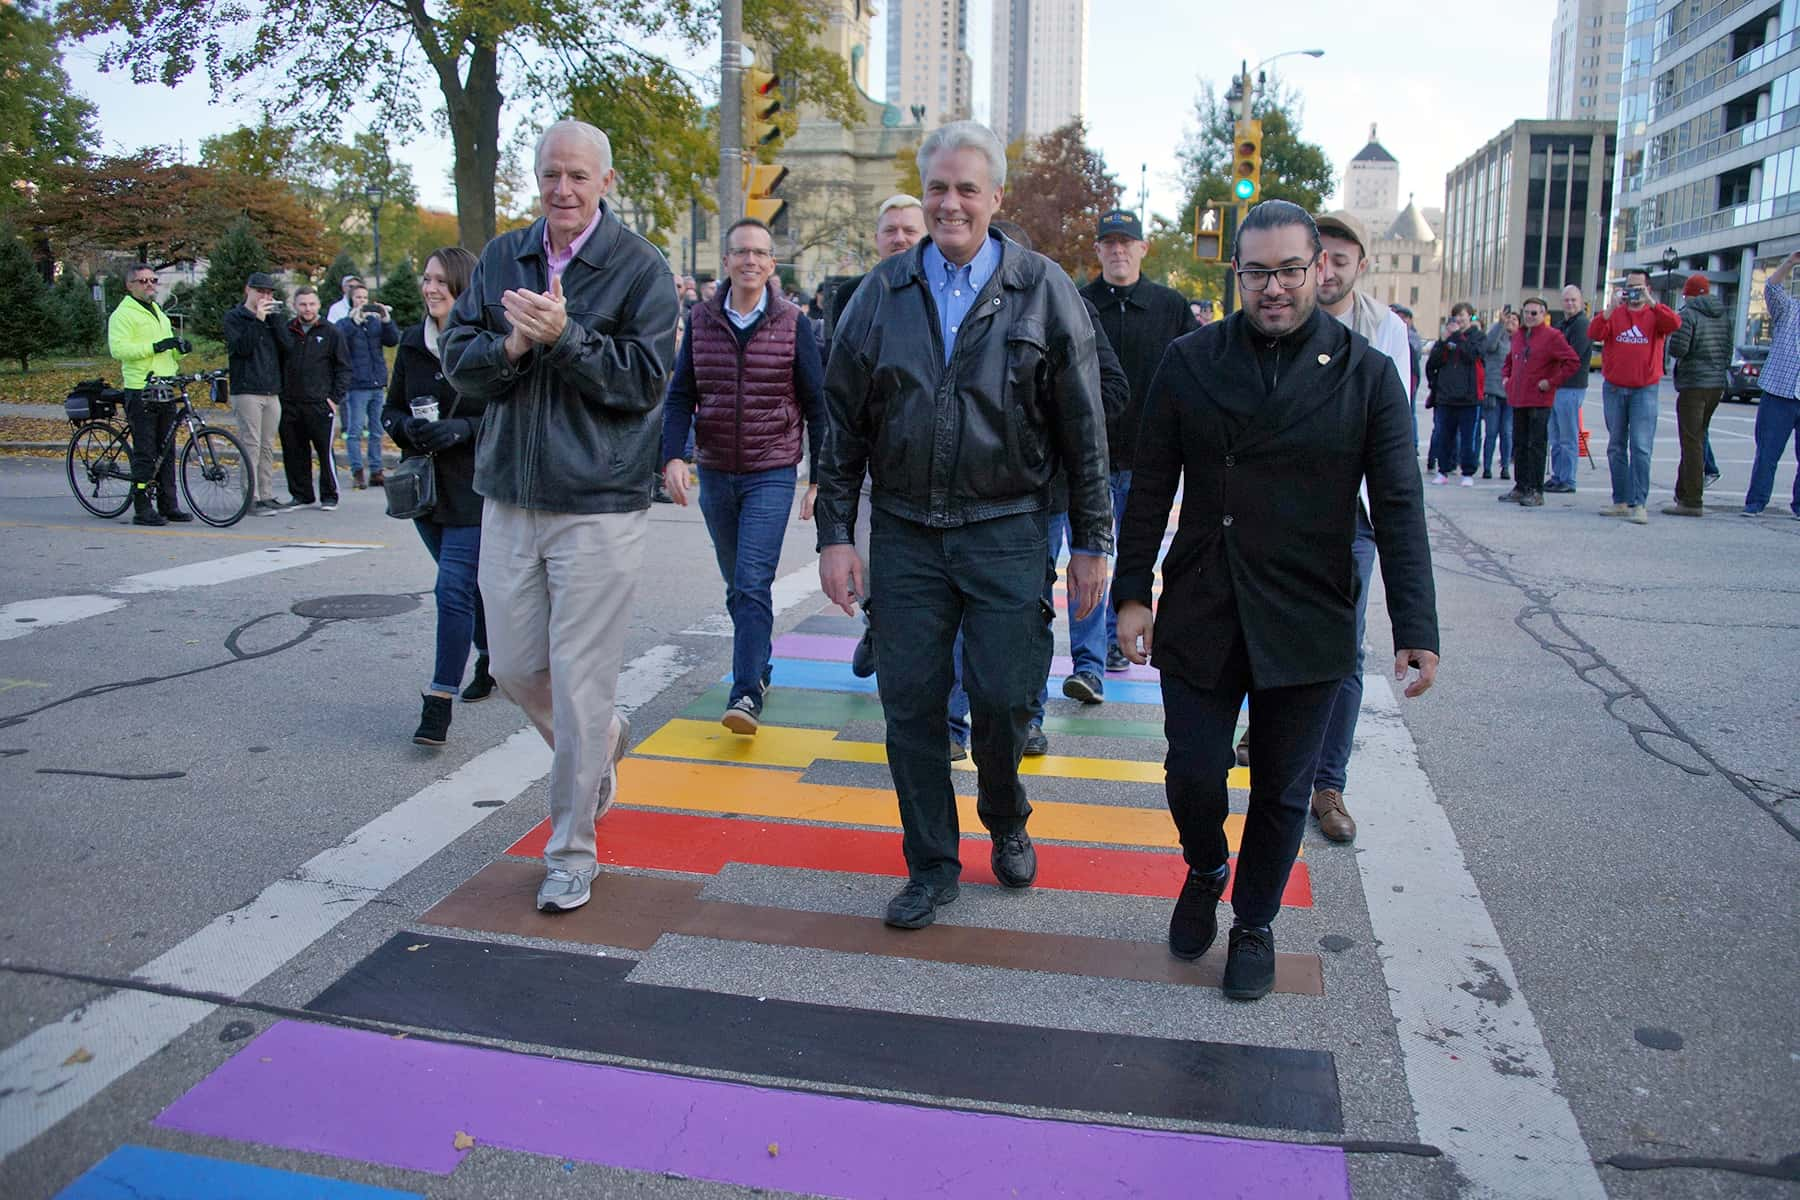 05_110318_rainbowcrosswalk_655